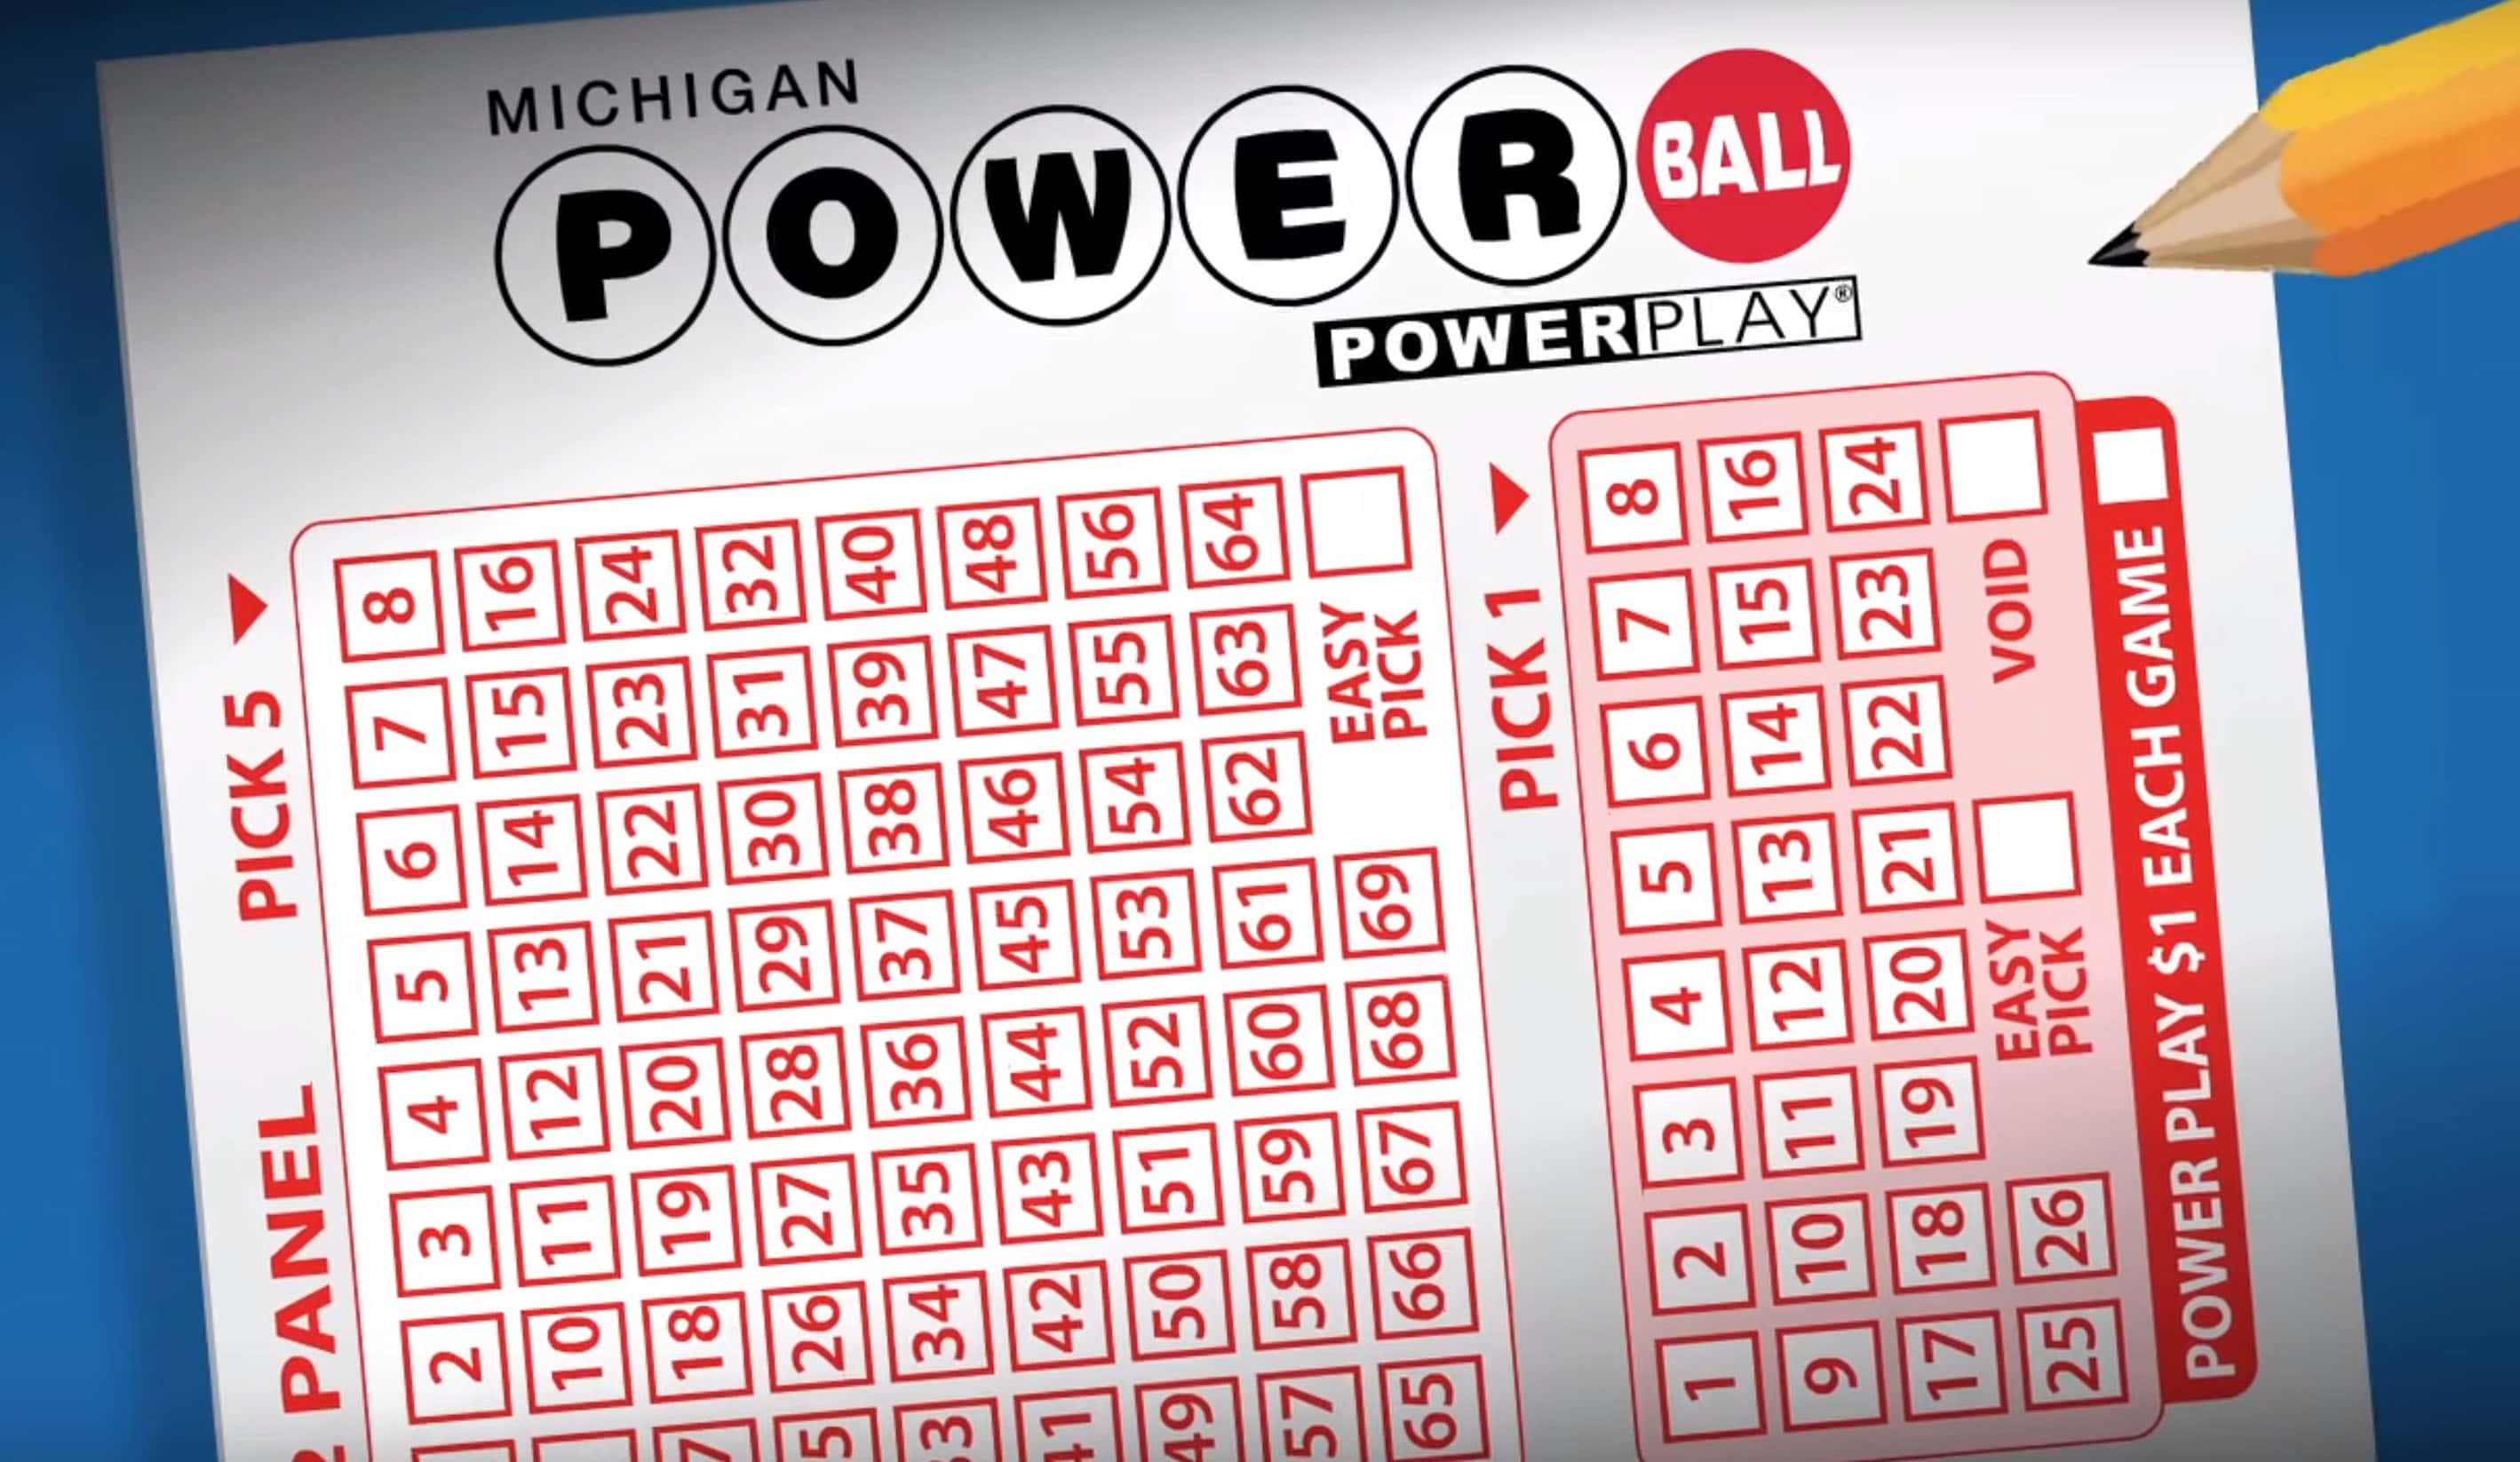 Michigan Buying 100,000 Powerball Tickets An Hour Today | Moody on the  Market